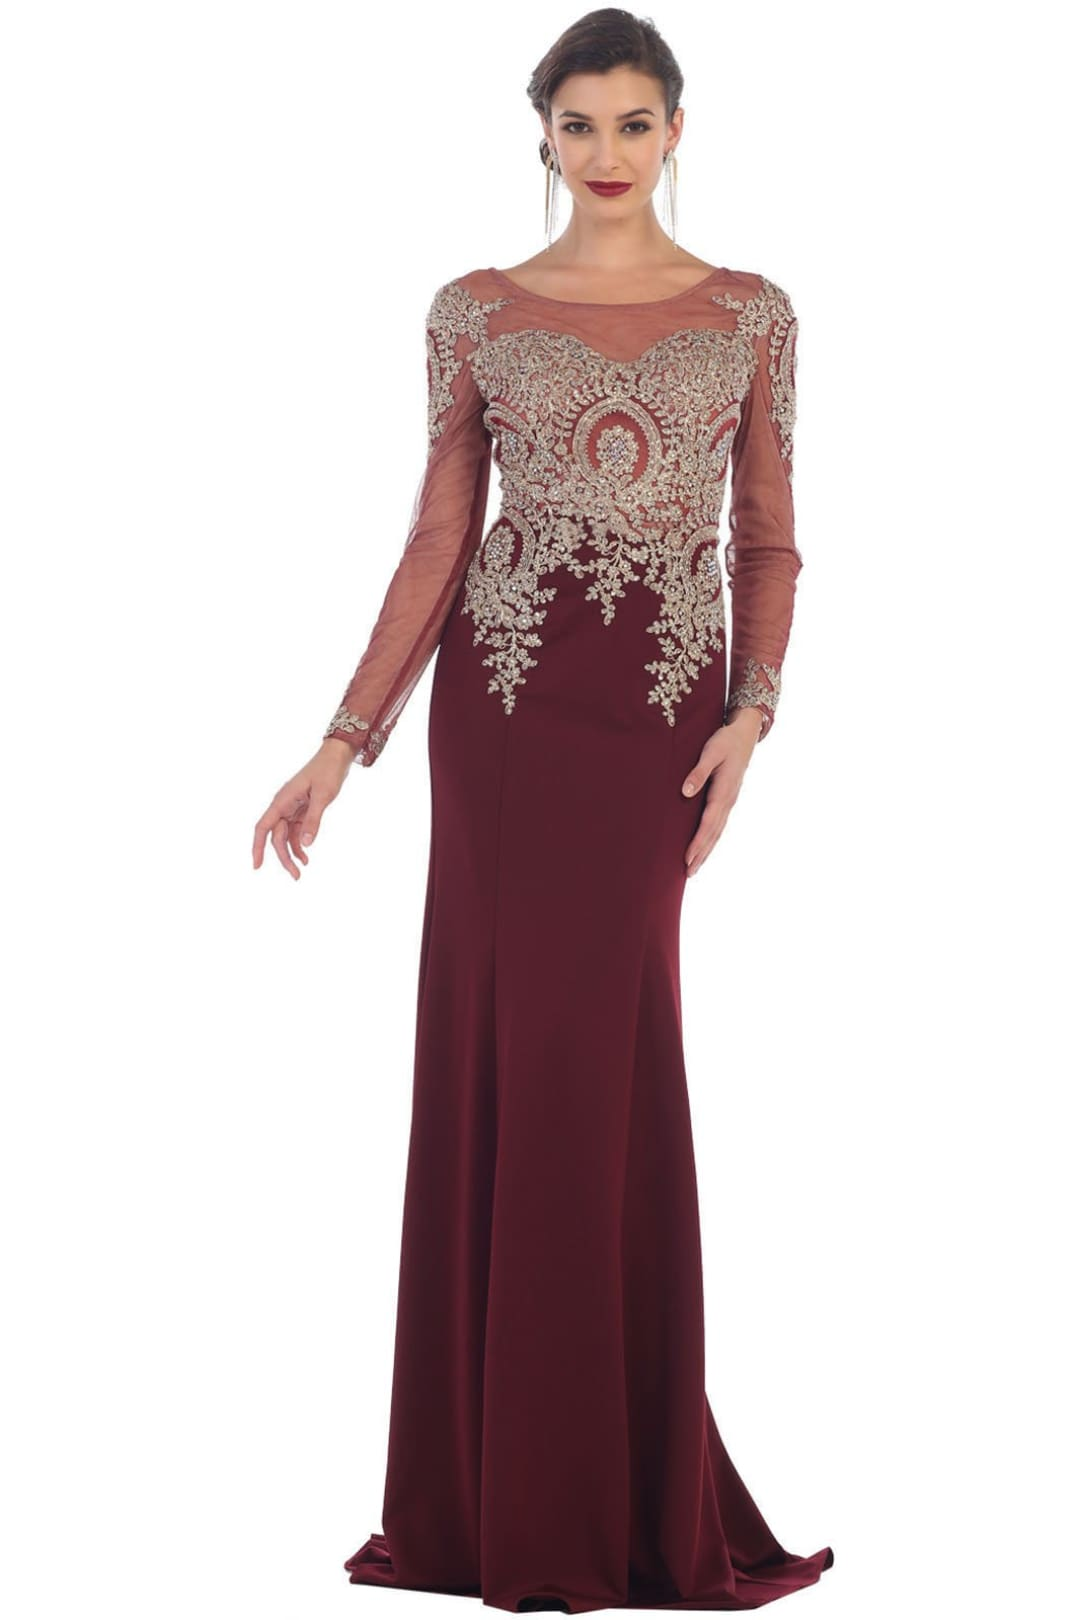 Magnificent Evening Dress for all Ages - Burgundy / 12